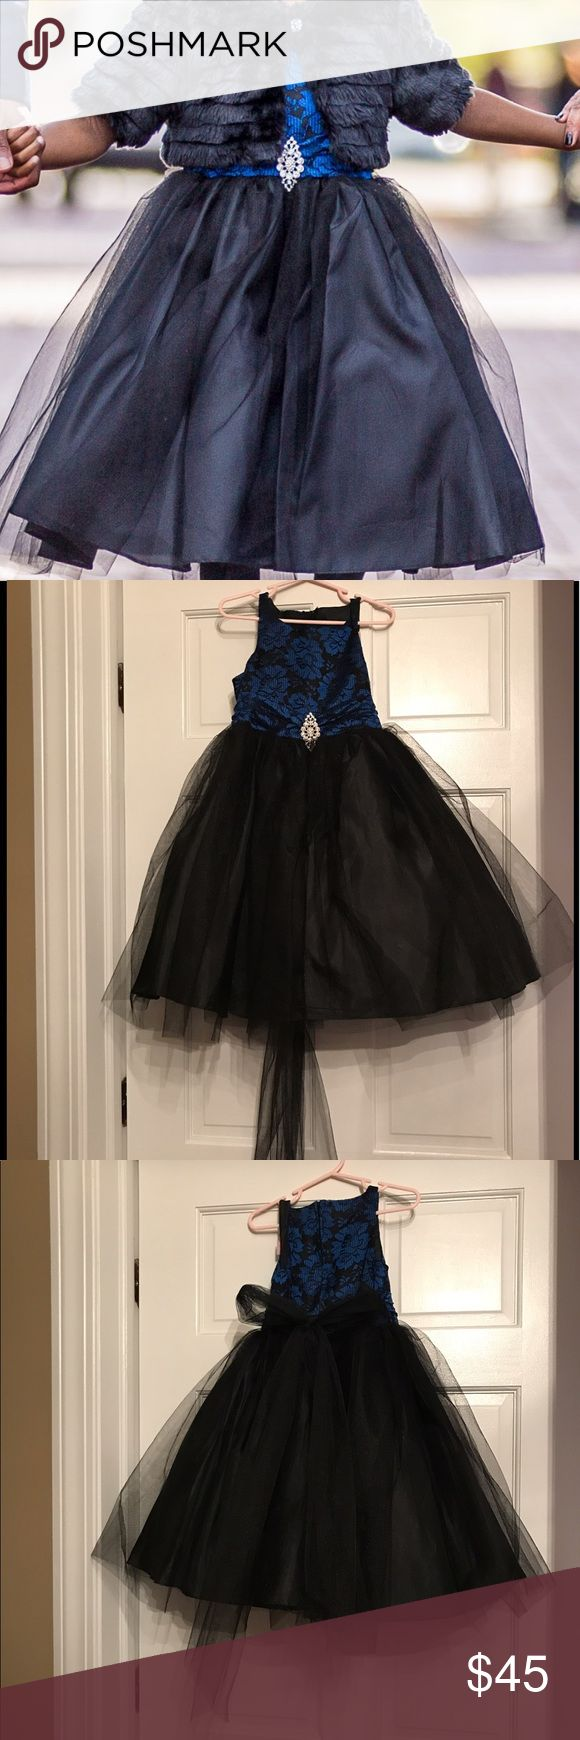 Kids Formal special occasion dress Black and Blue dress with tulle skirt Kids Formal Dresses Formal